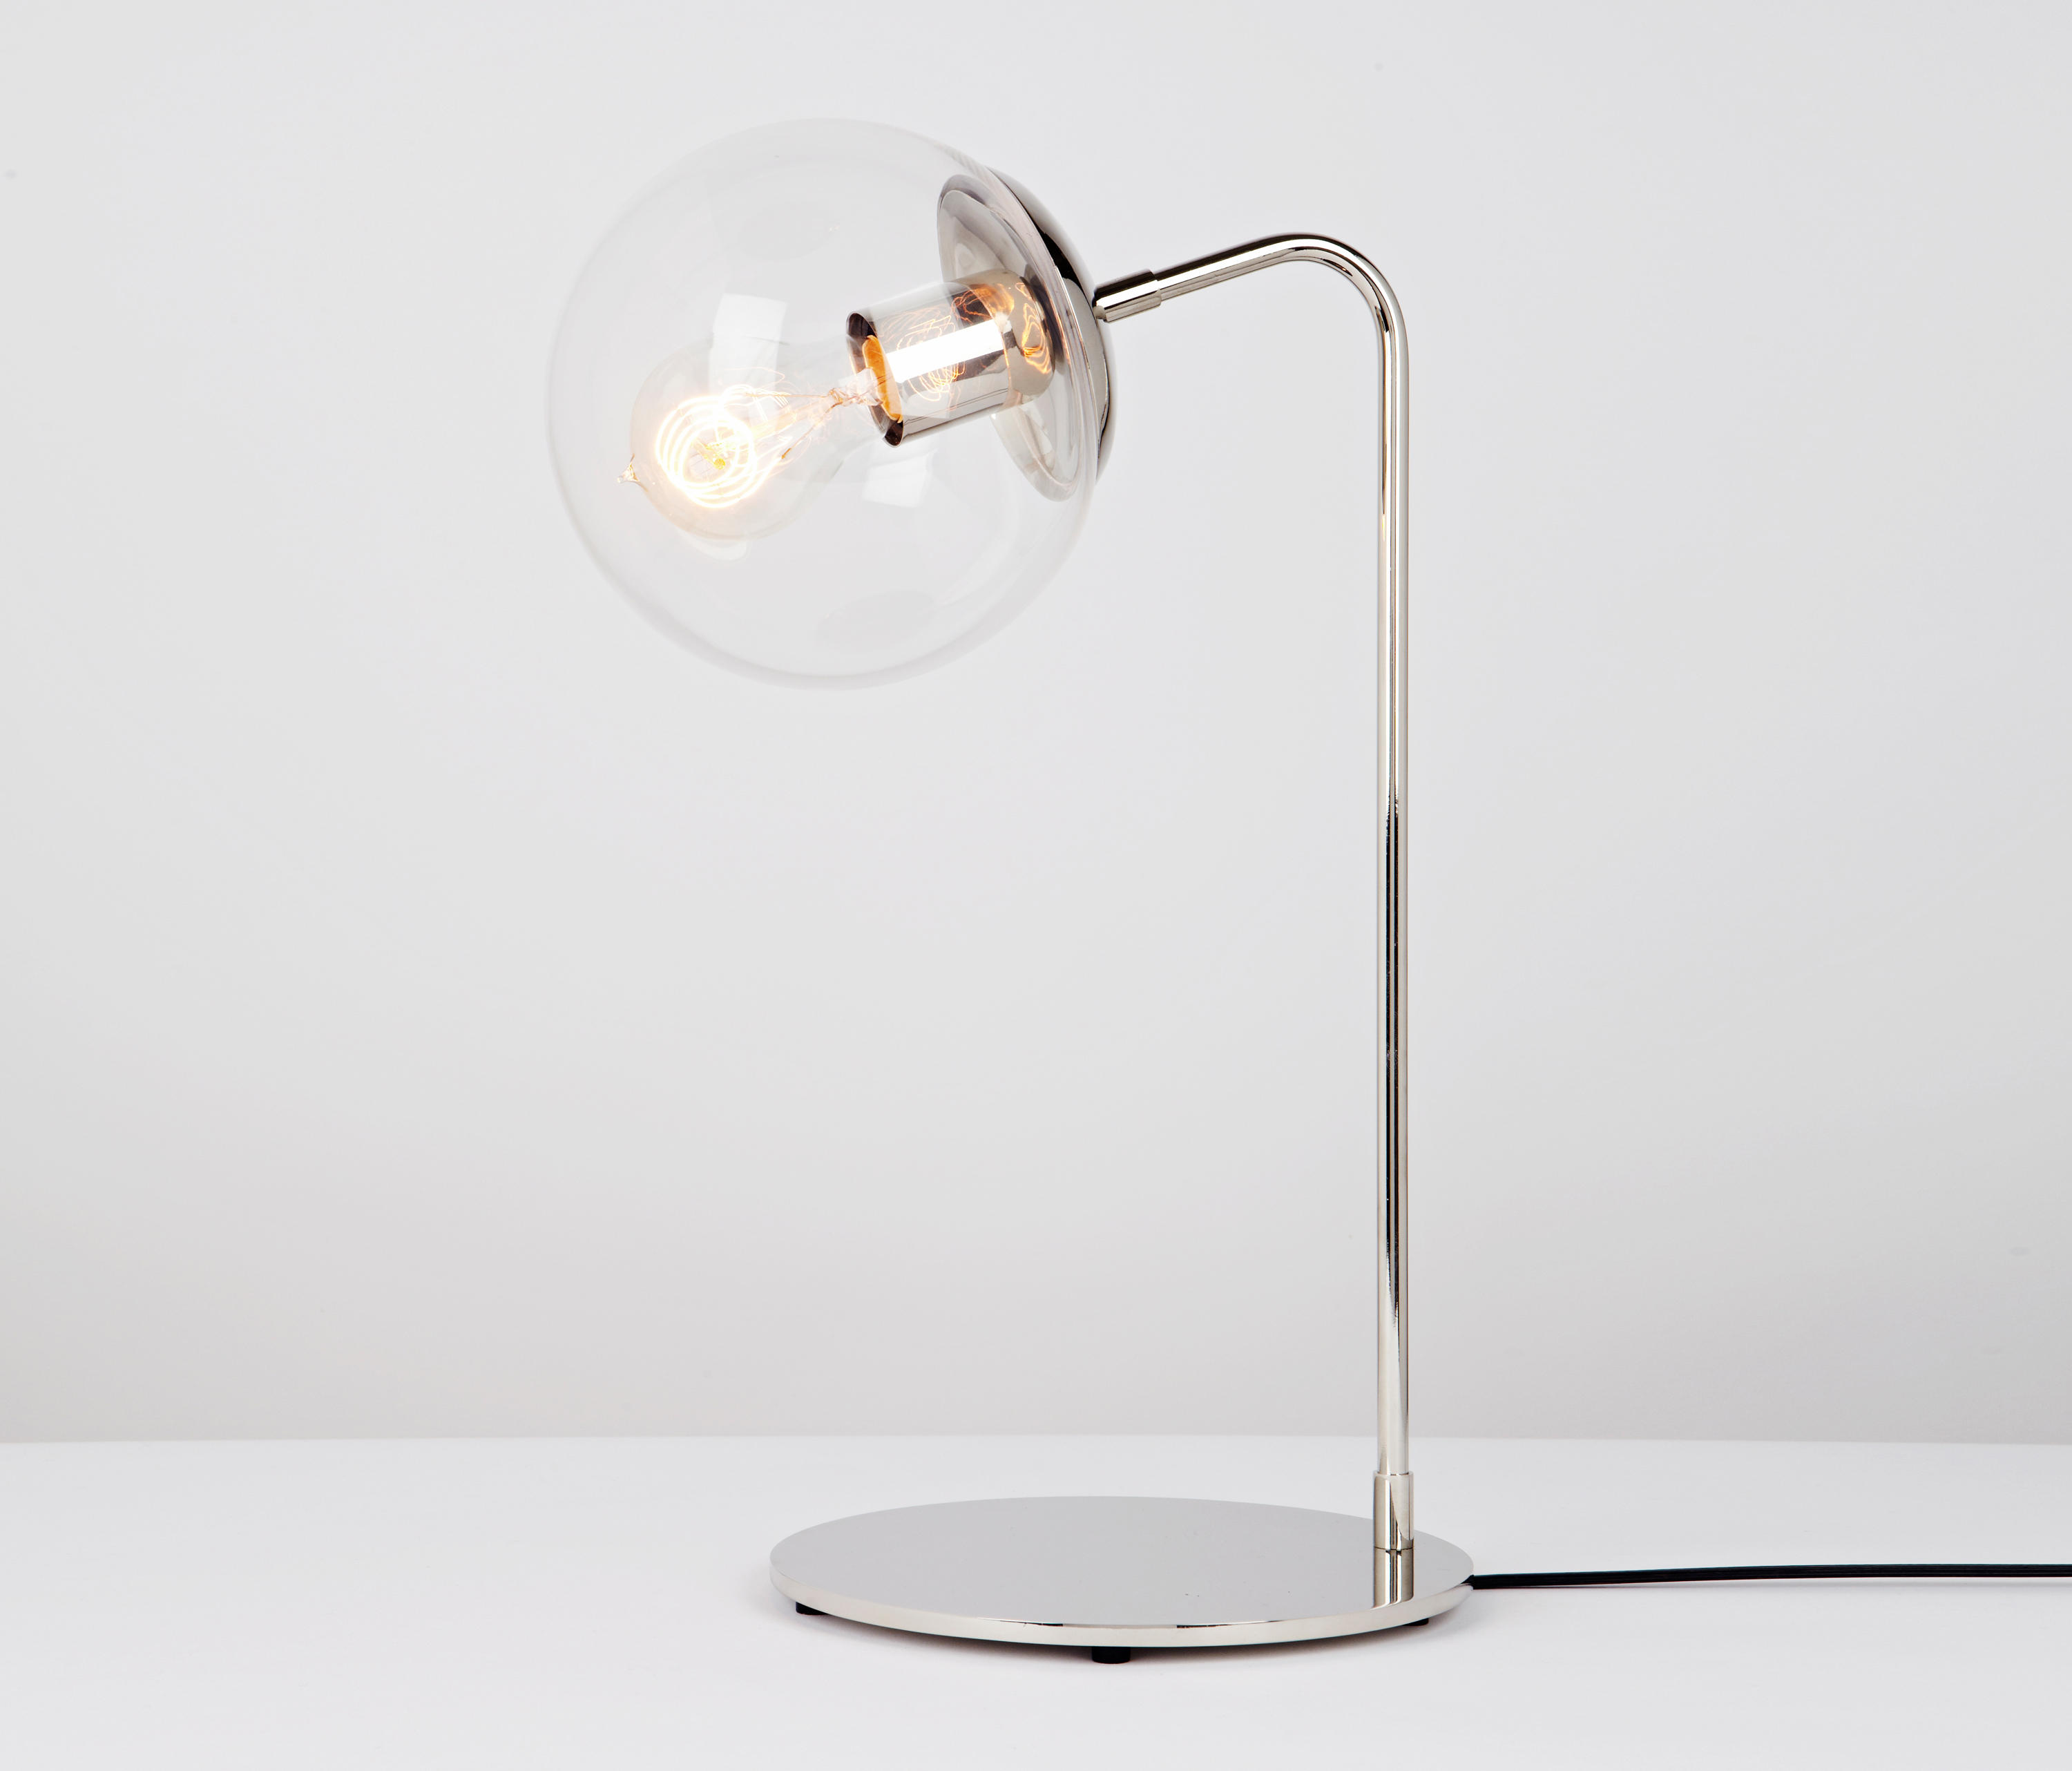 Modo desk lamp nickel clear table lights from roll hill architonic modo desk lamp nickel clear by roll hill table lights aloadofball Choice Image